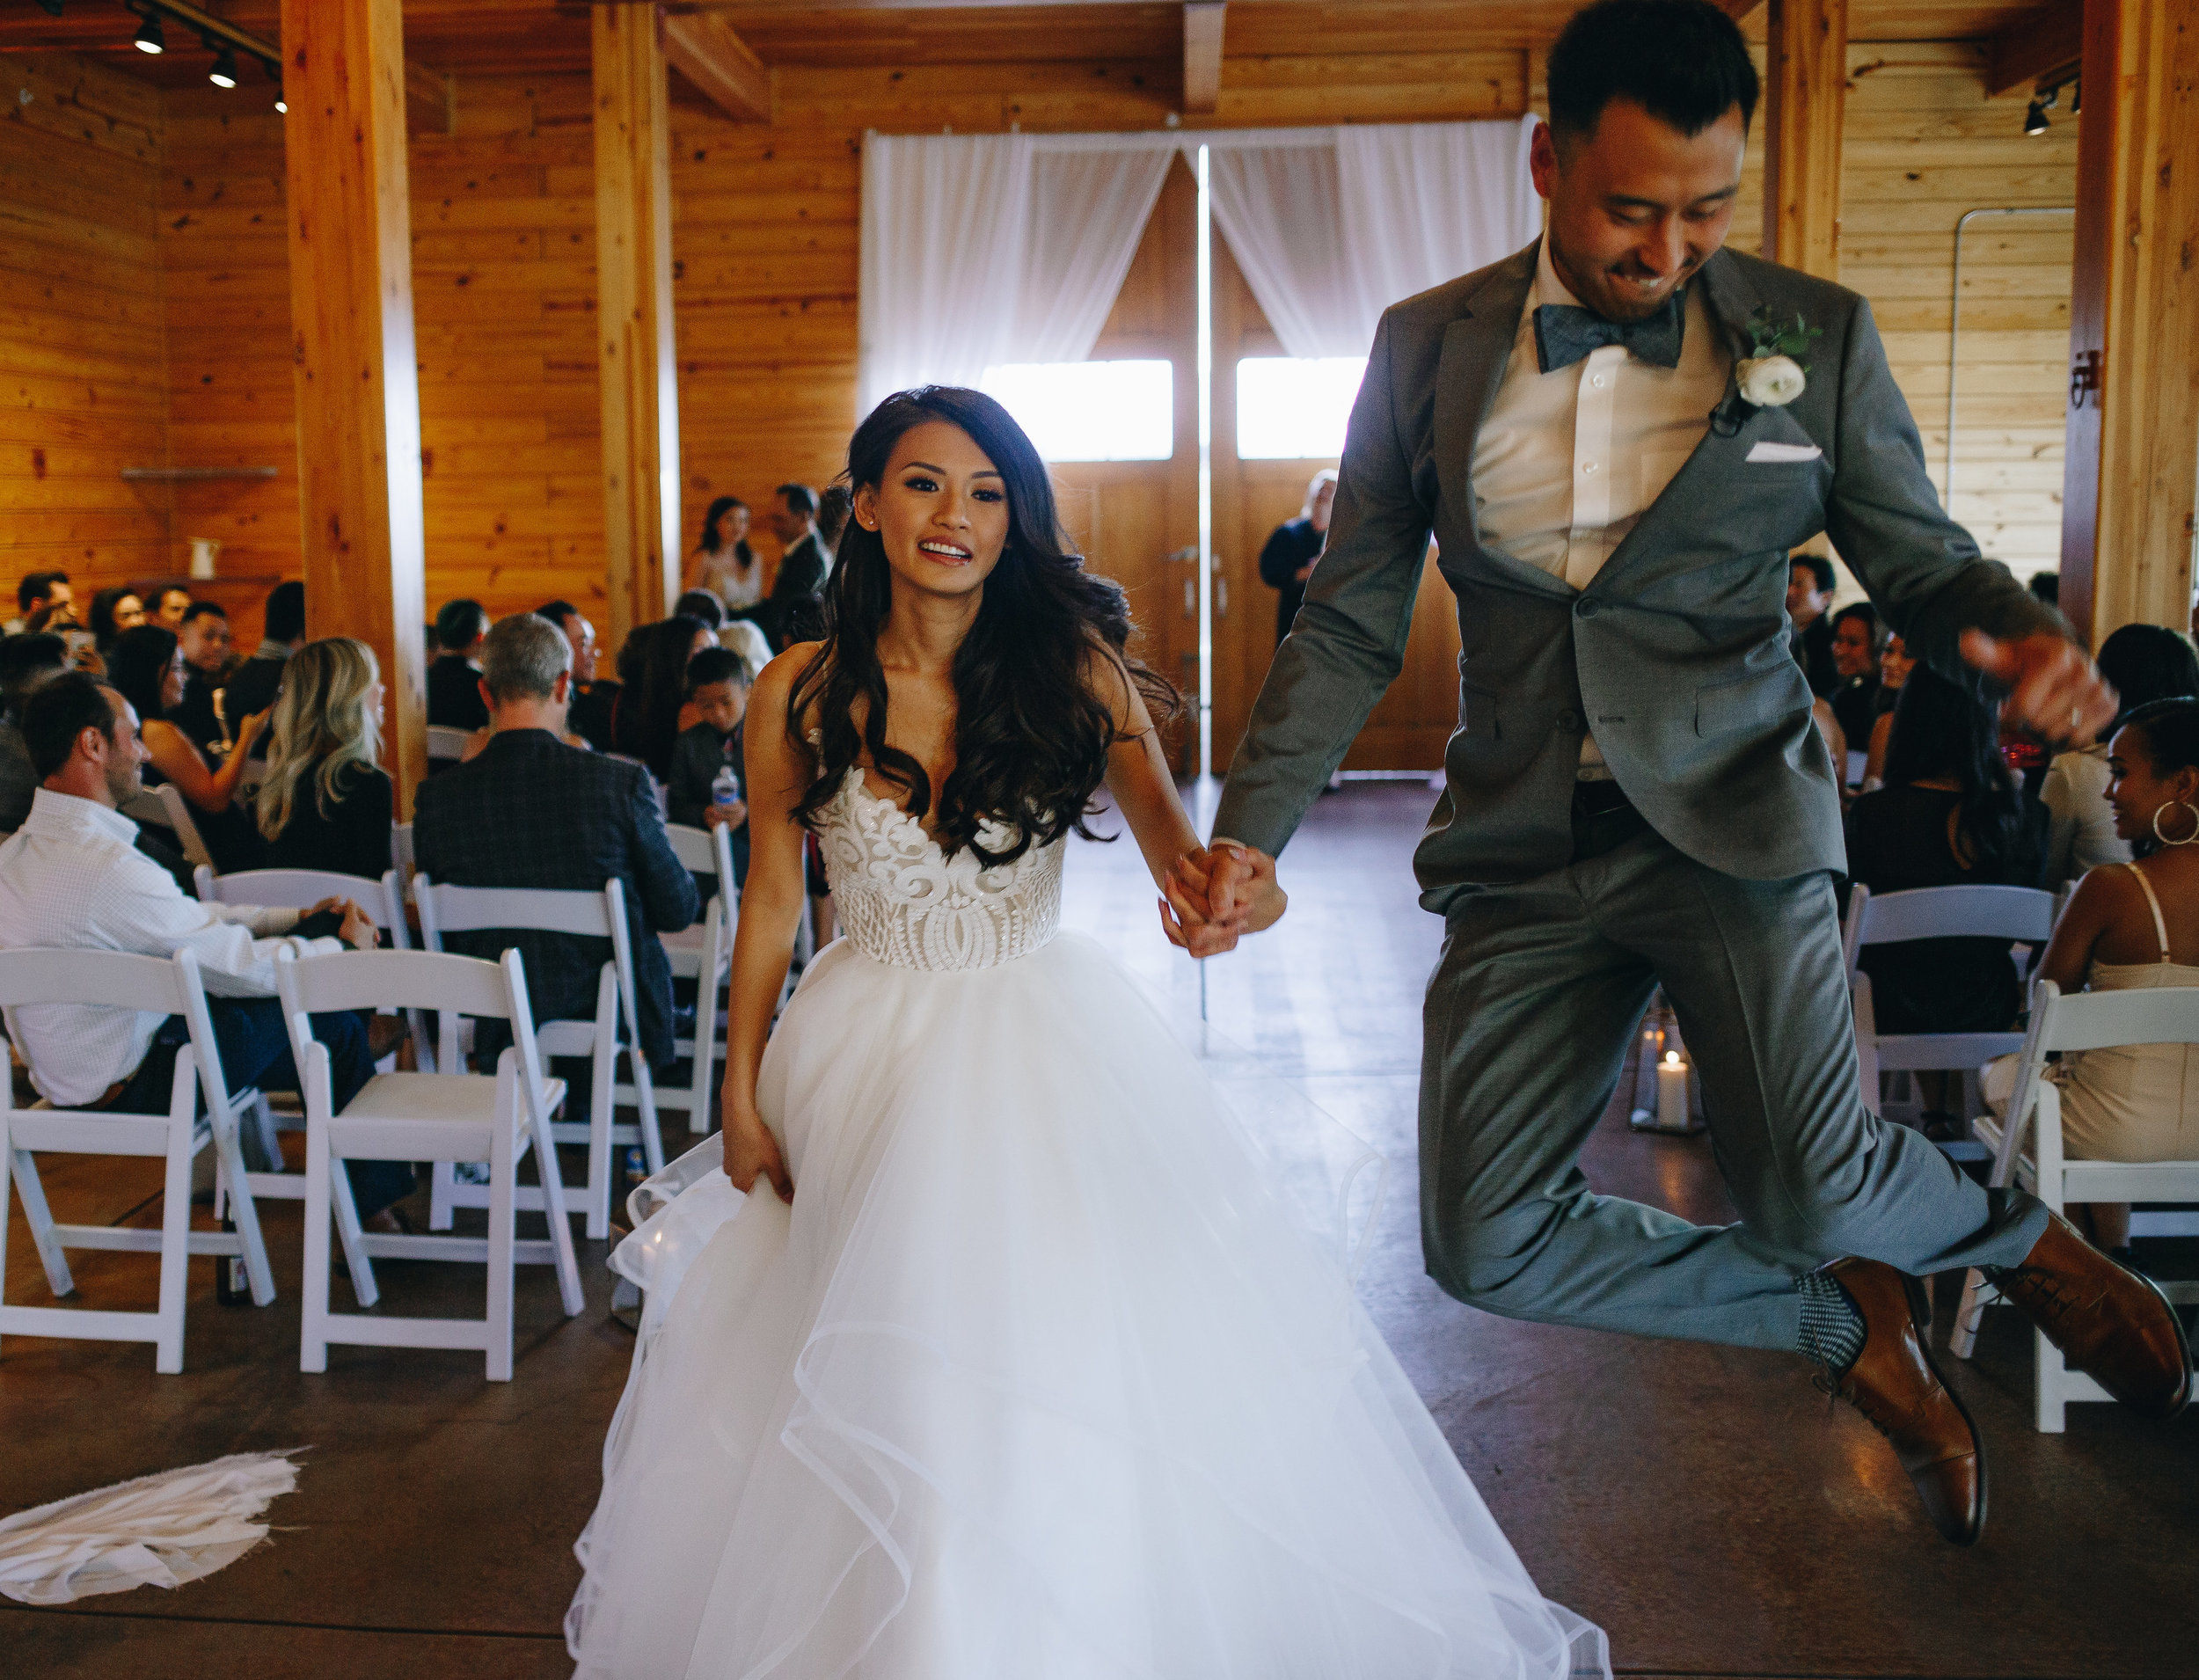 Groom heel clicking at wedding recessional